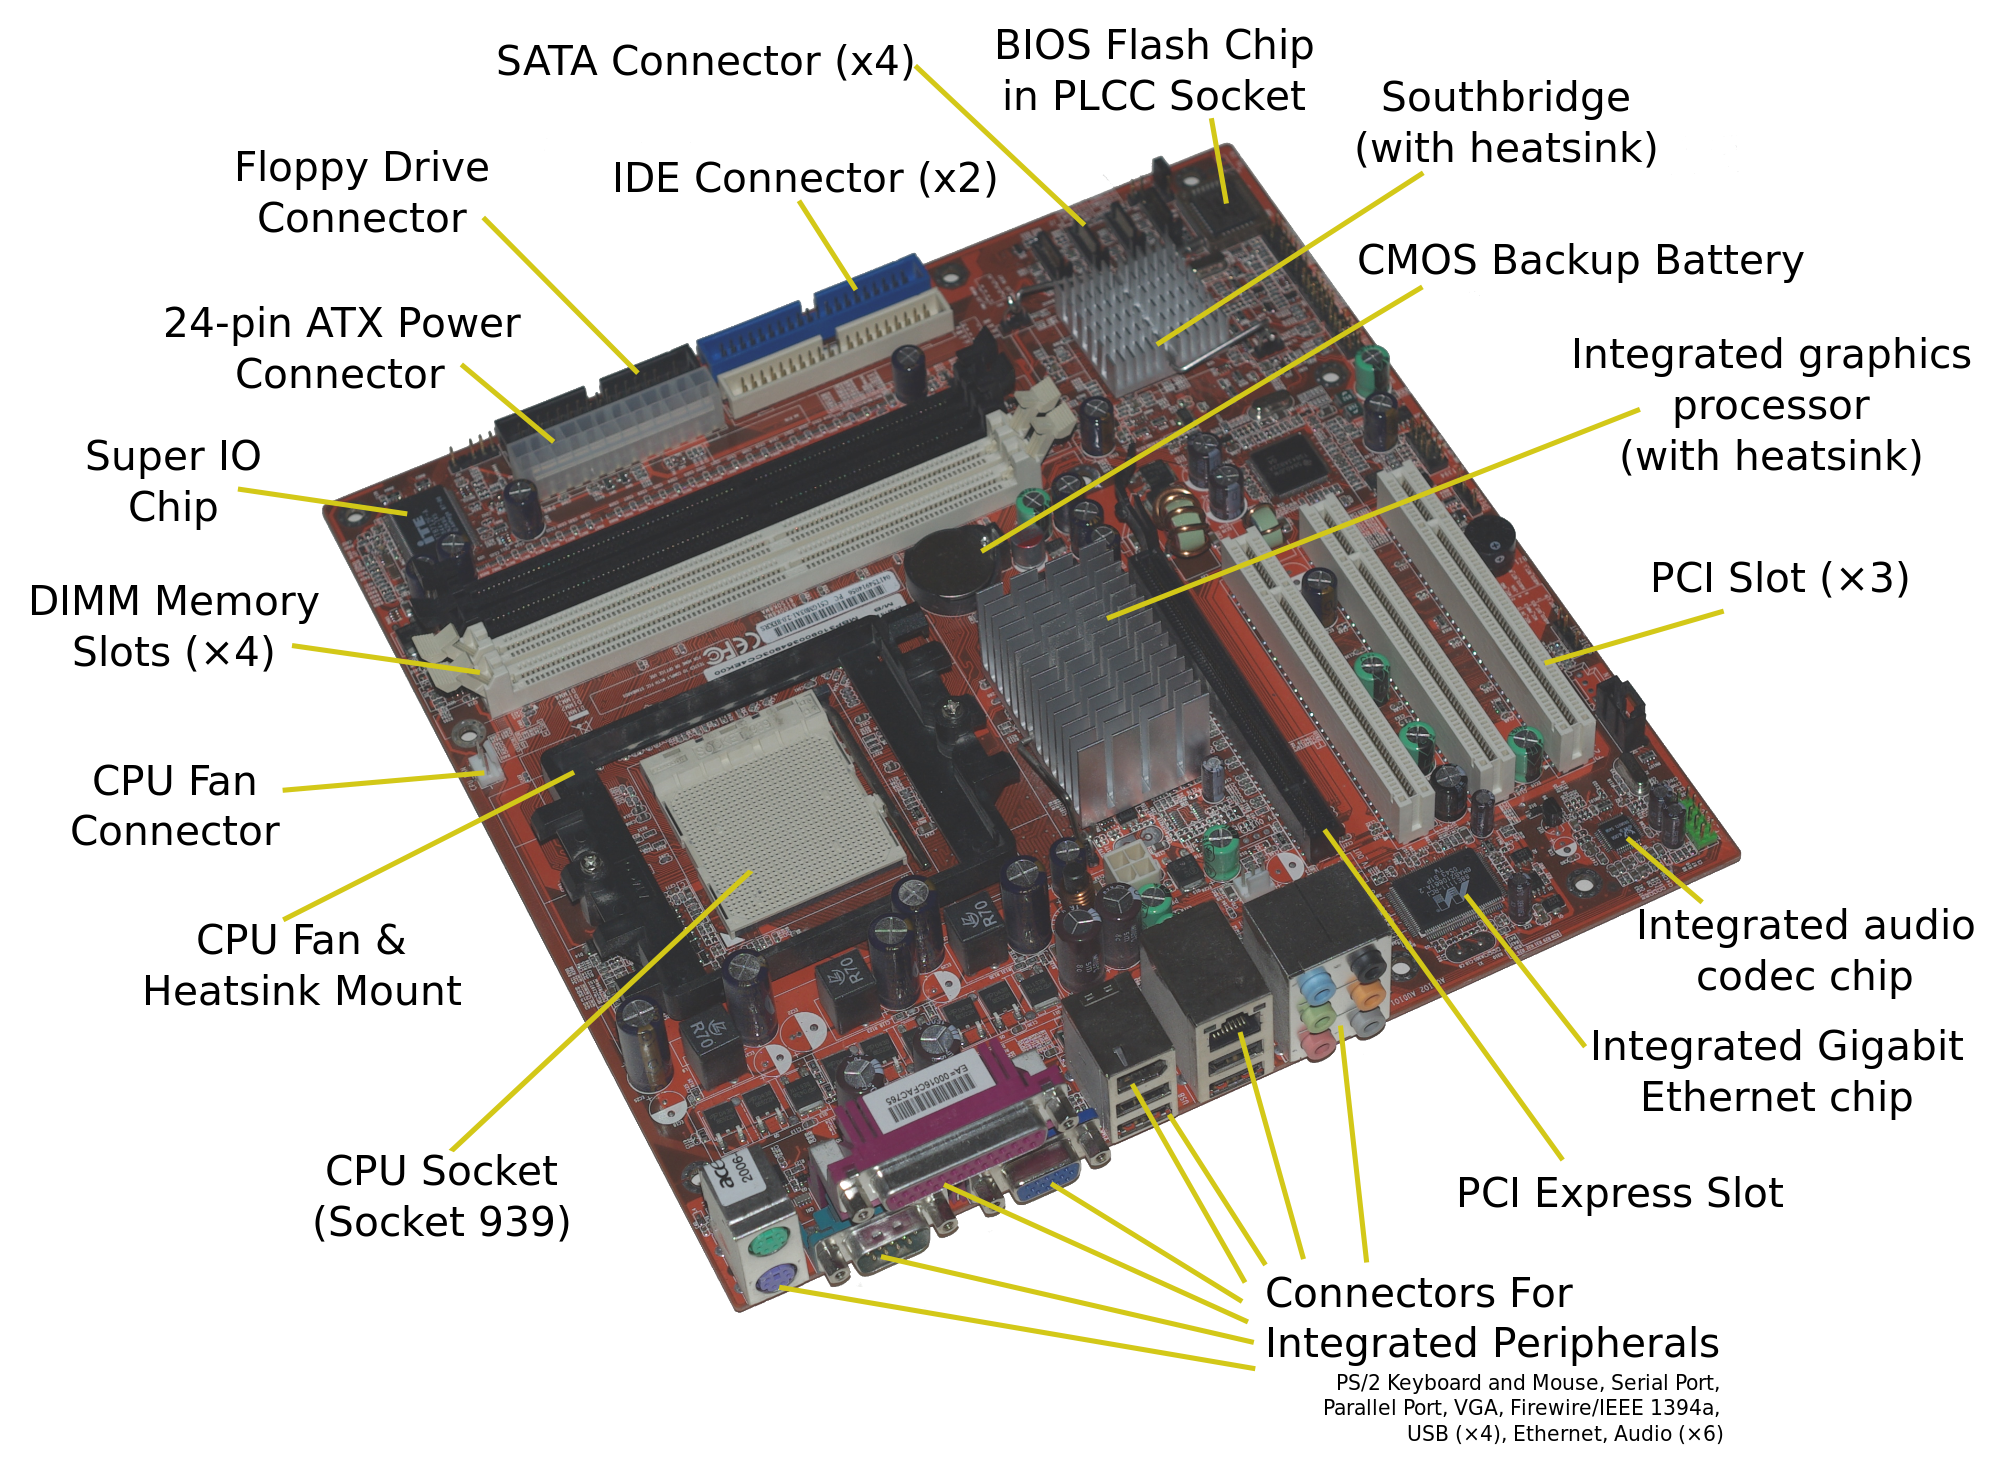 2000px-acer_e360_socket_939_motherboard_by_foxconn-svg